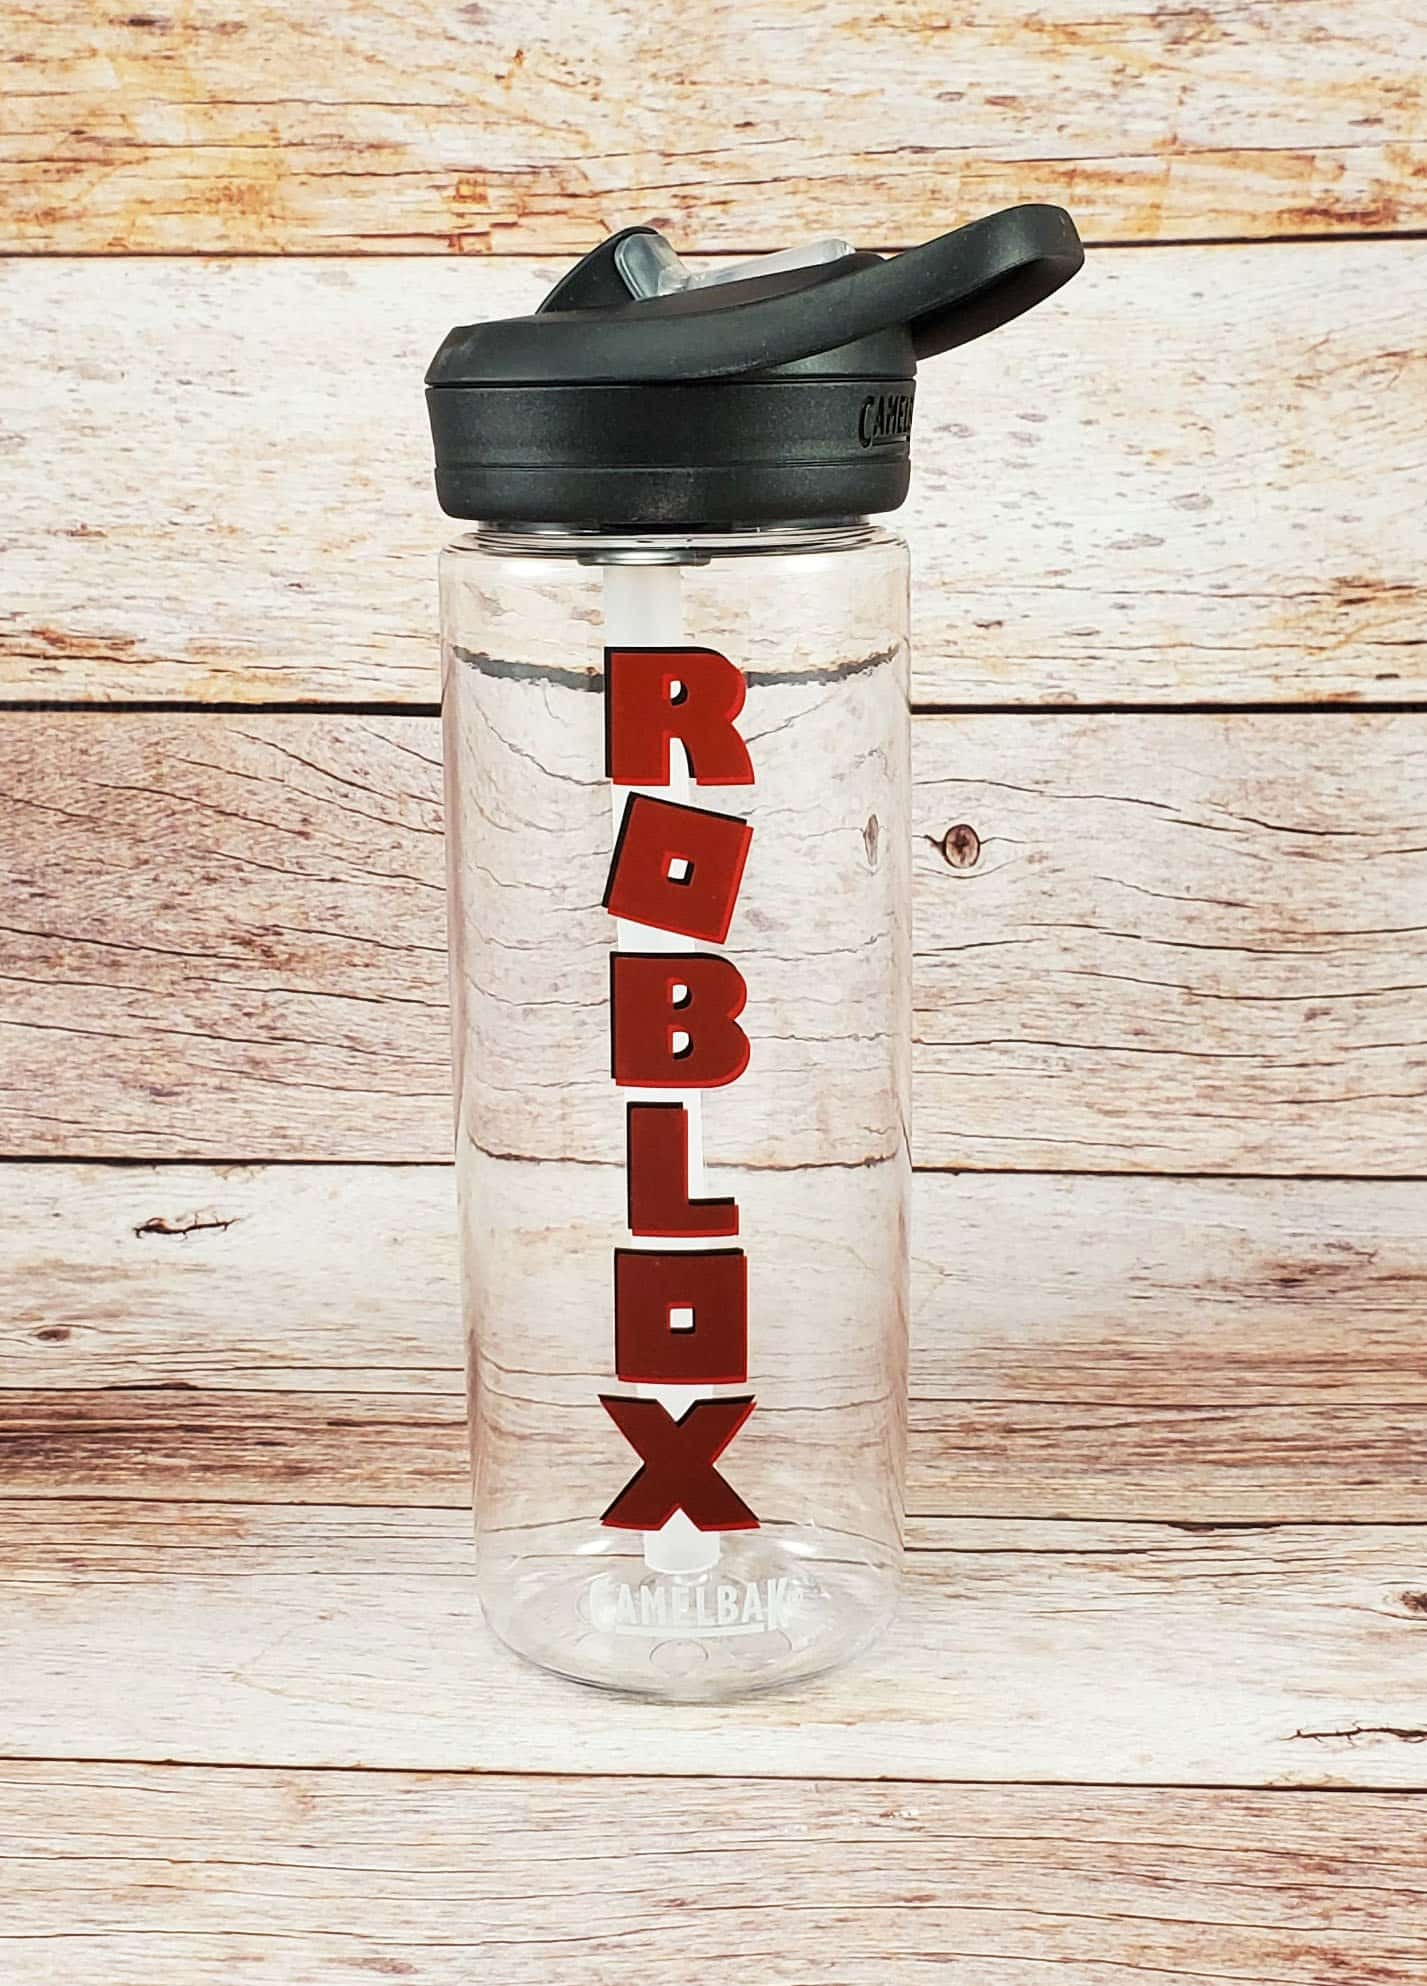 Finished Roblox water bottle